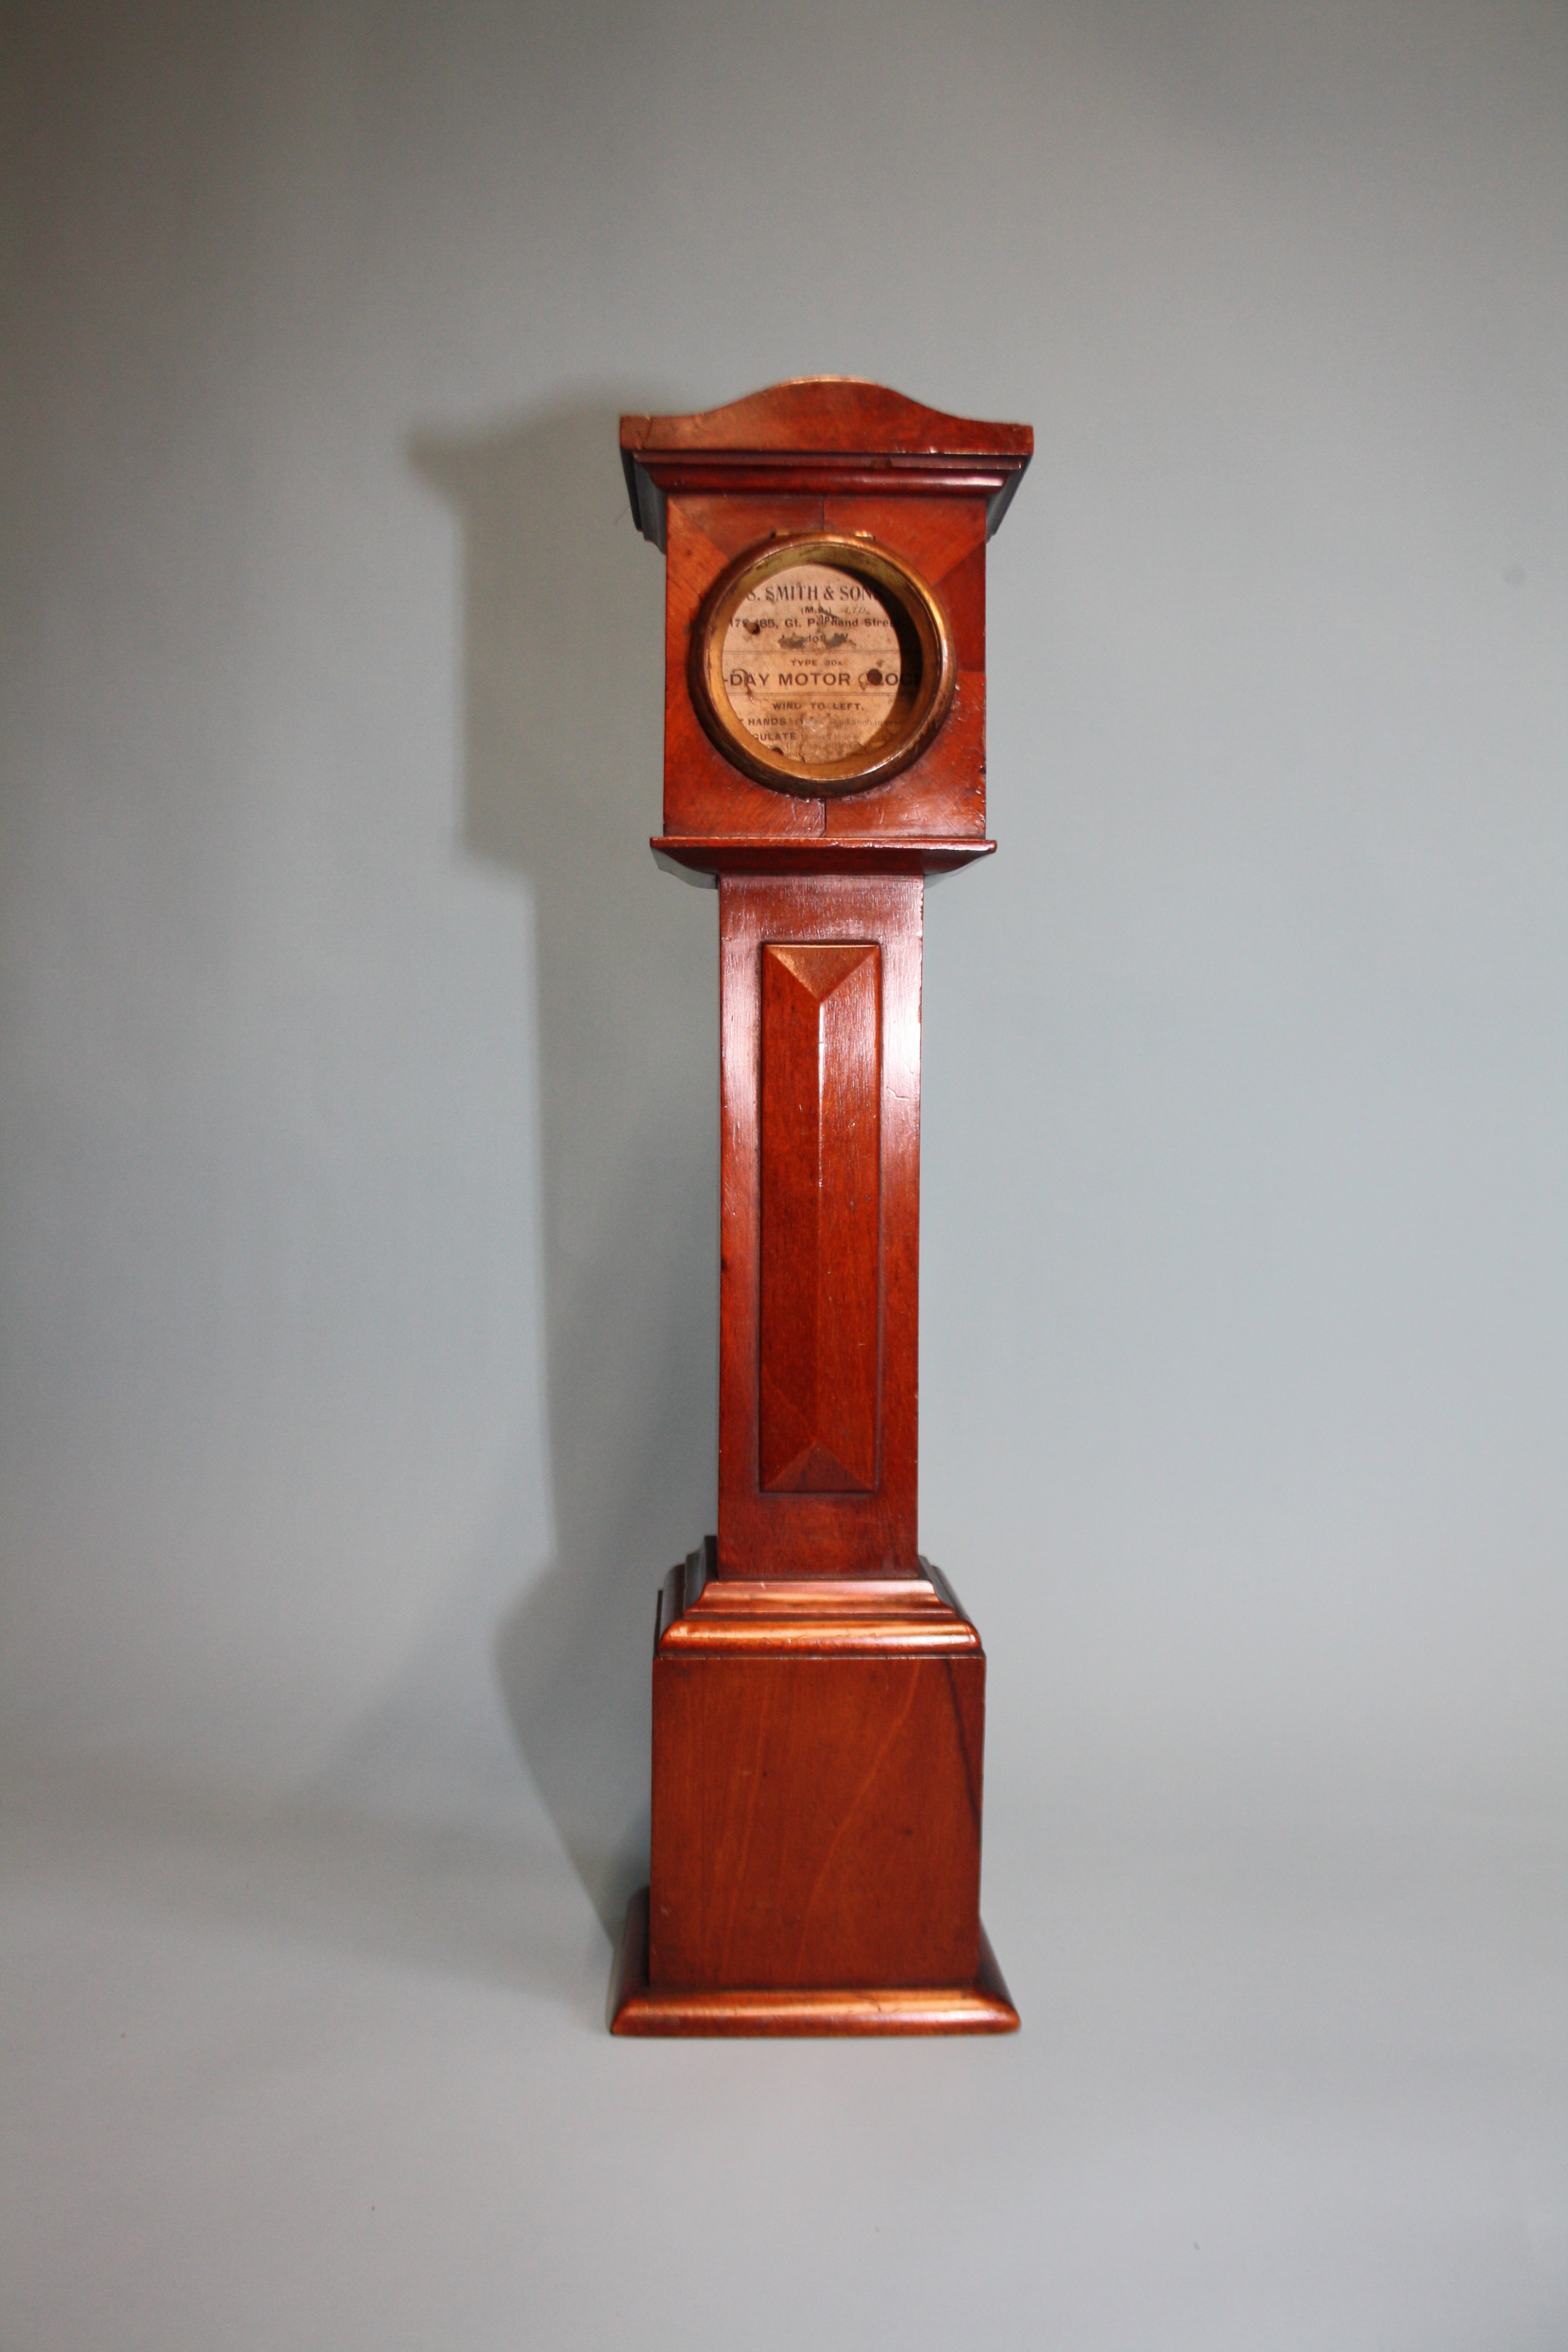 ornament in style of miniature grandfather clock